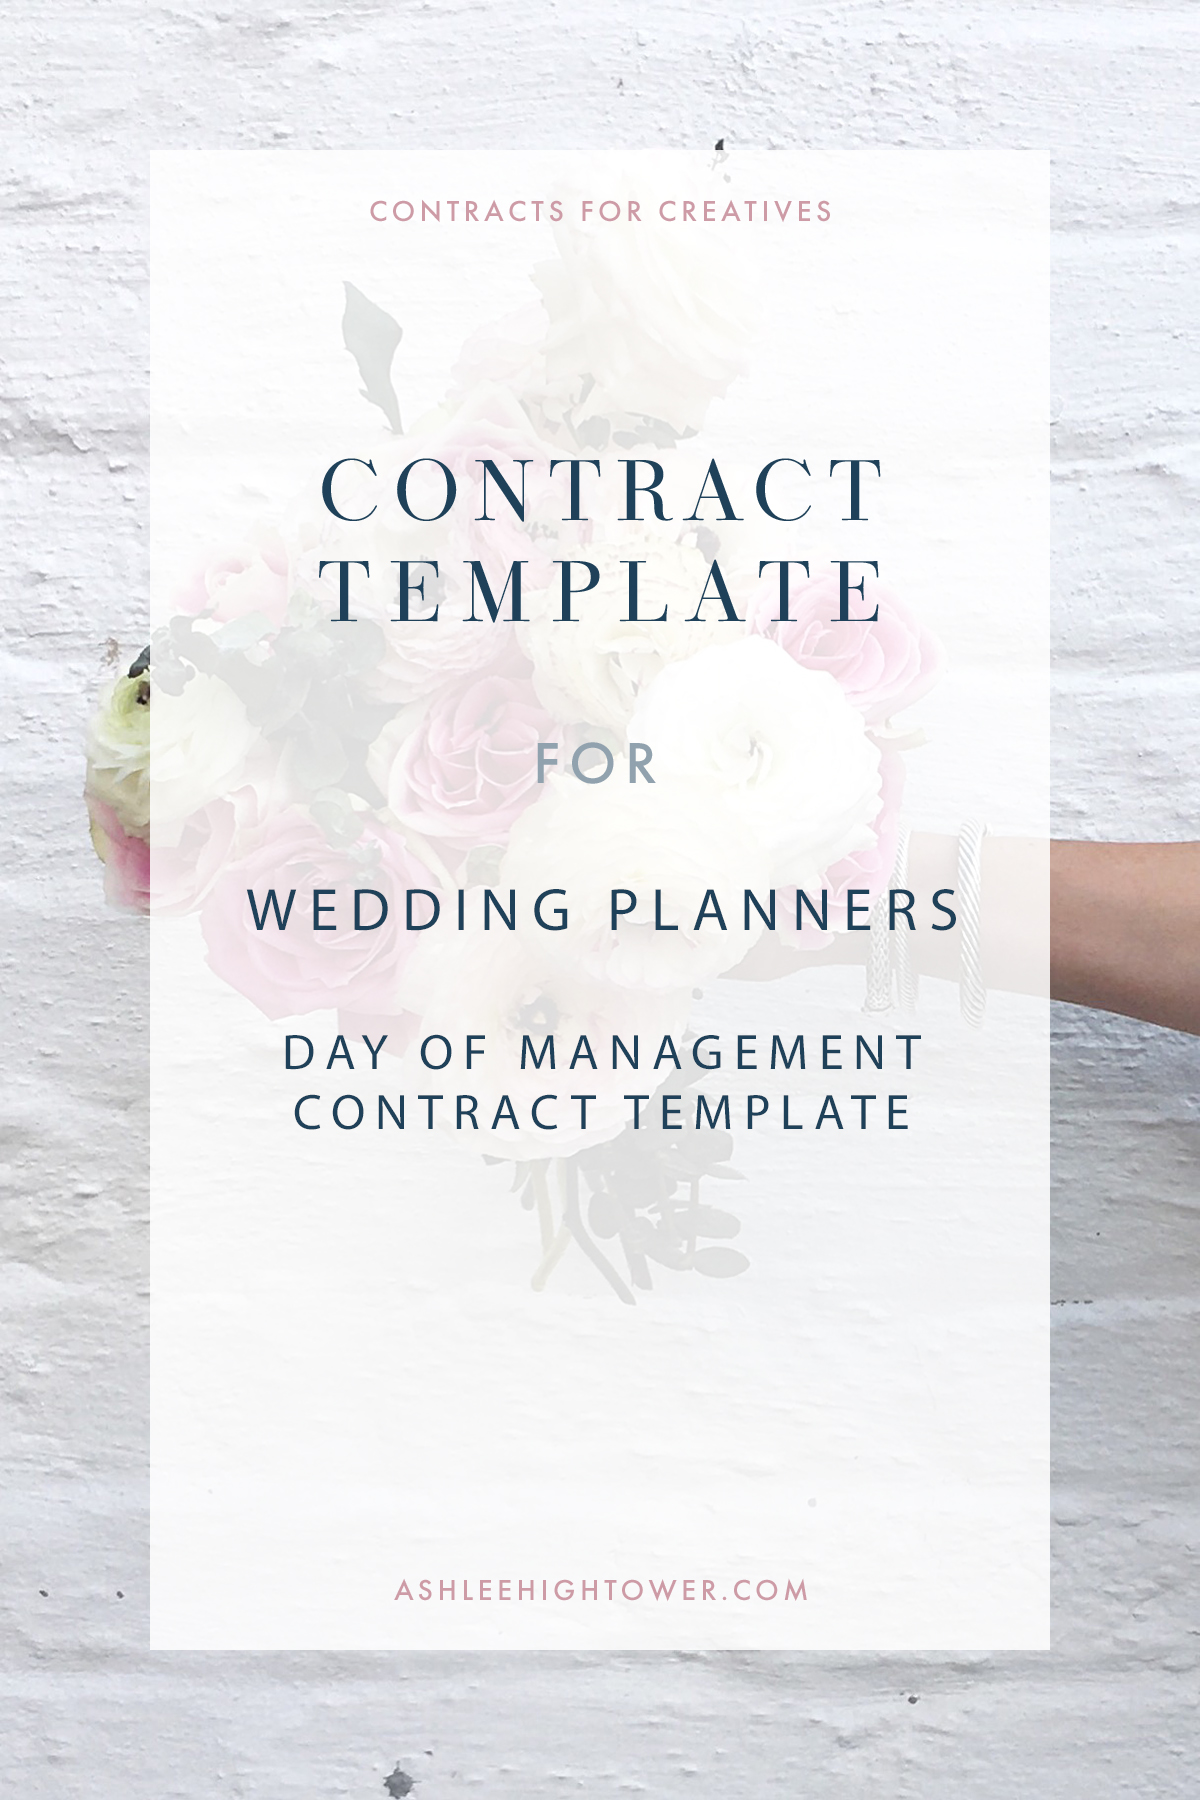 Day Of Management Contract Template